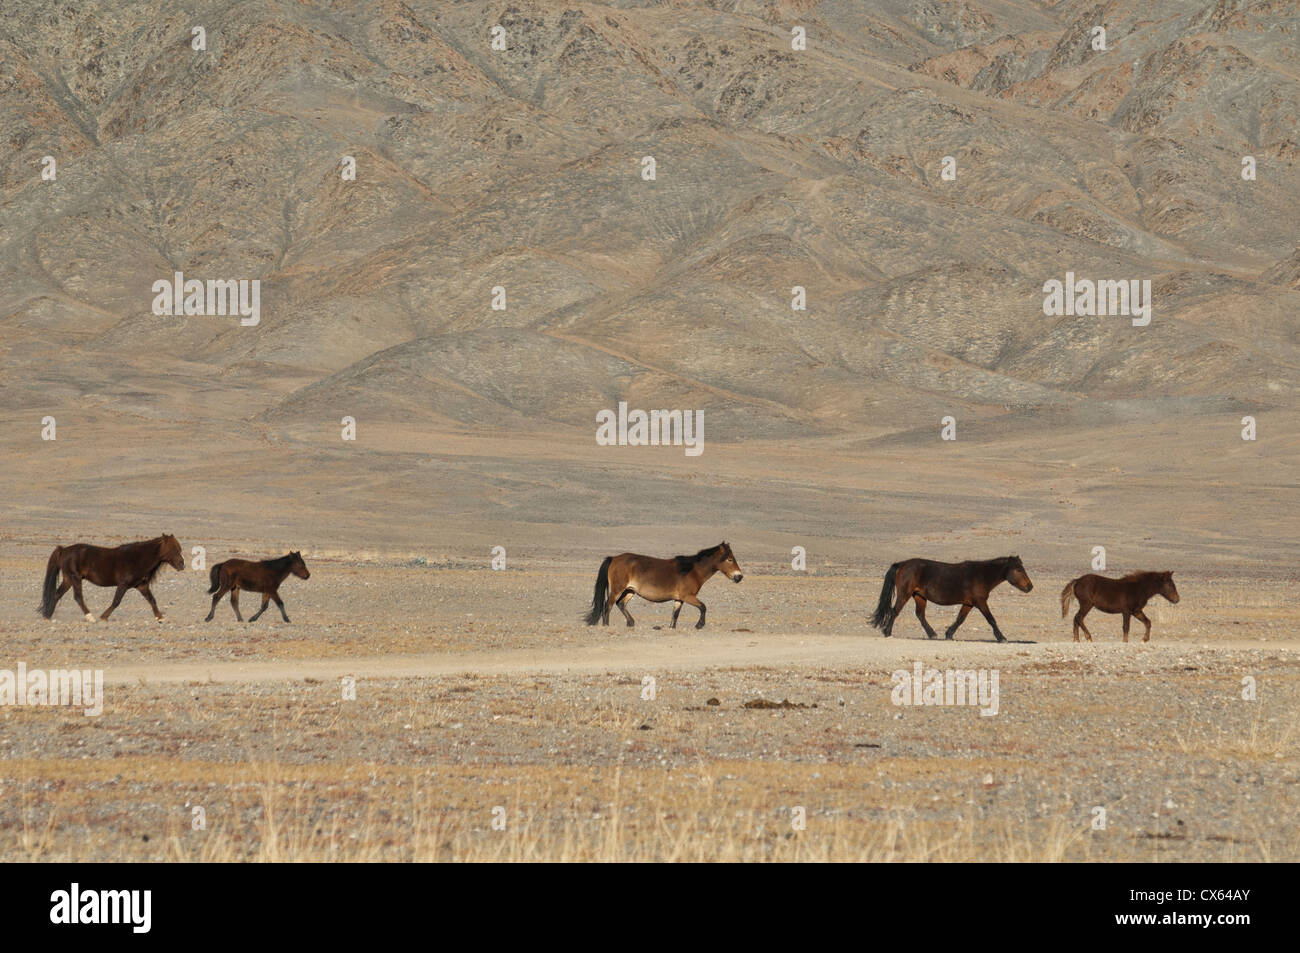 A Group Of Wild Horses In The Beautiful Range Country Of The Altai Stock Photo Alamy